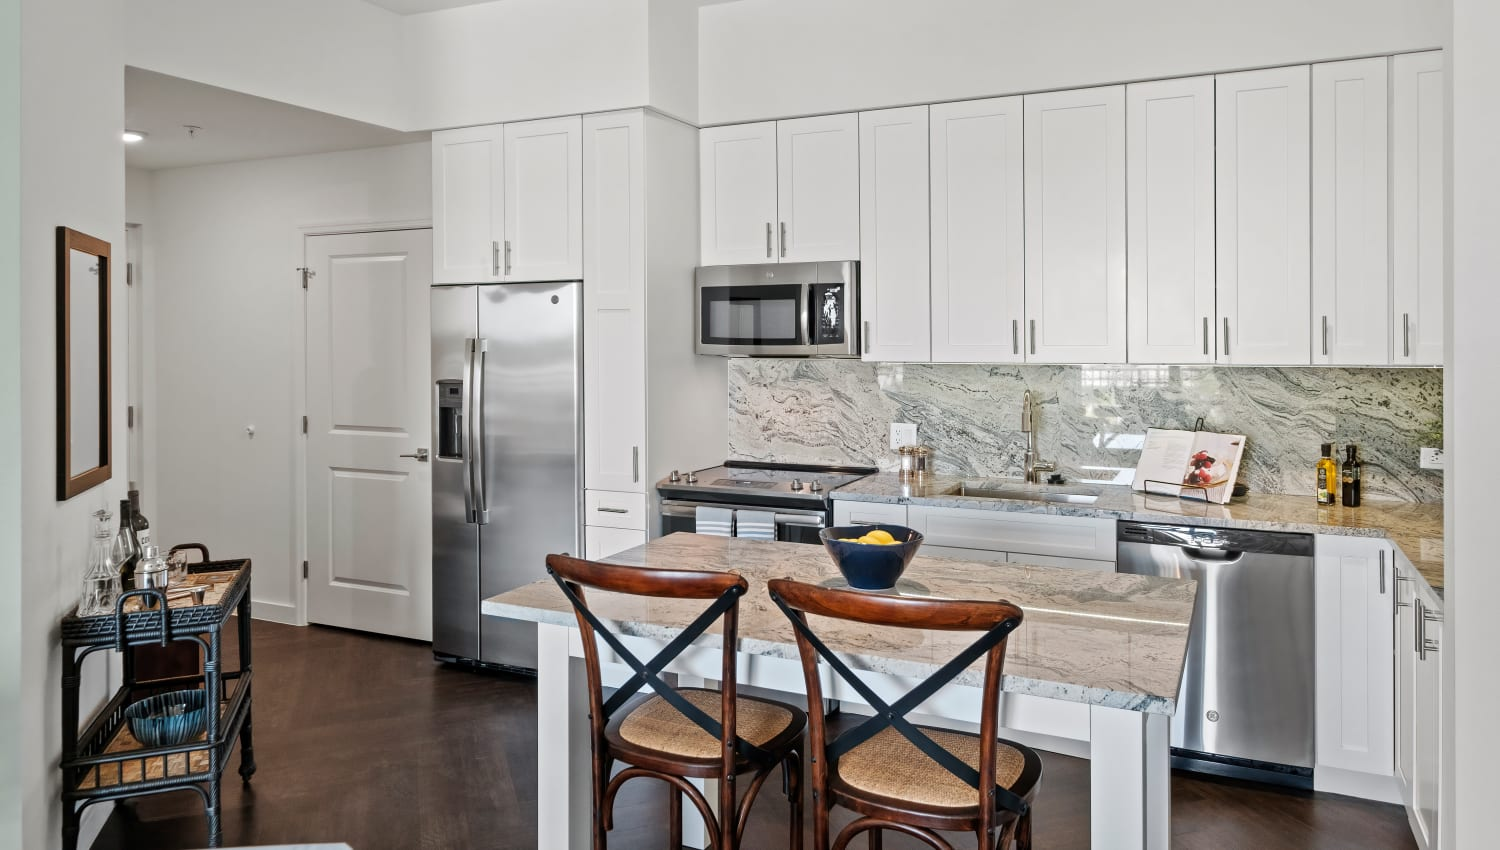 Model kitchen with adaptable island and stainless steel appliances at Town Lantana in Lantana, Florida